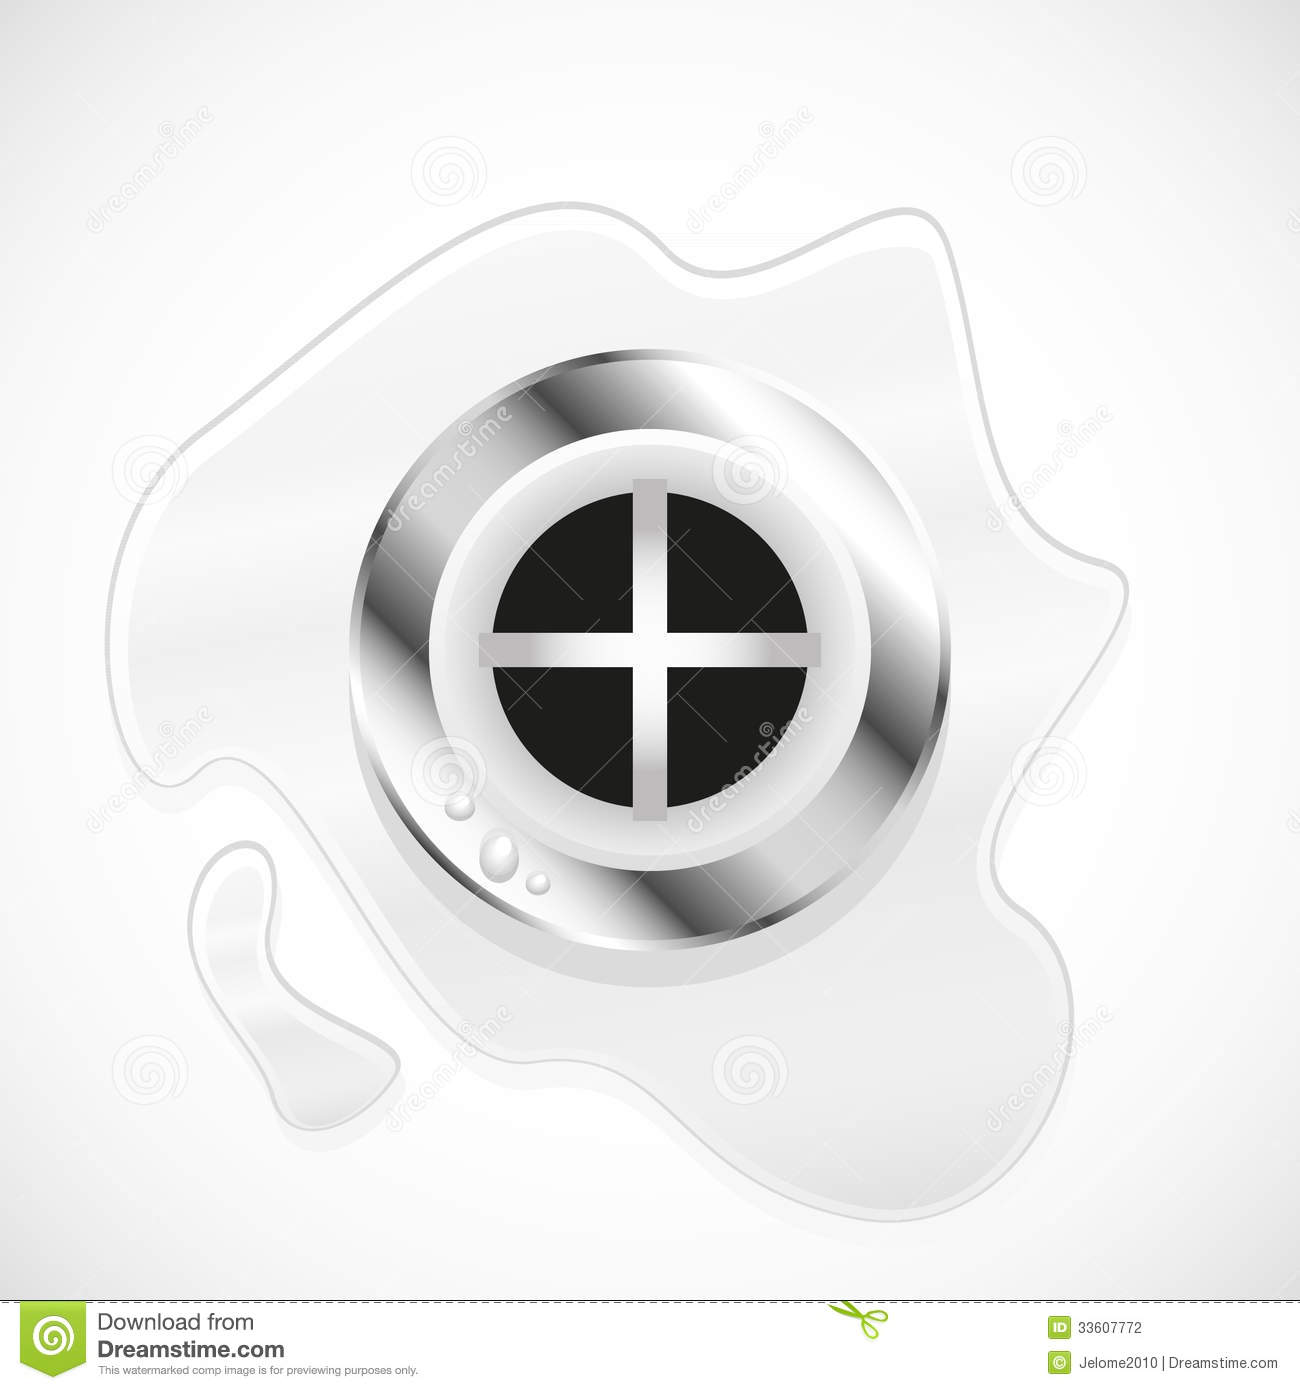 Water Draining Down Plug Hole Stock Photography.